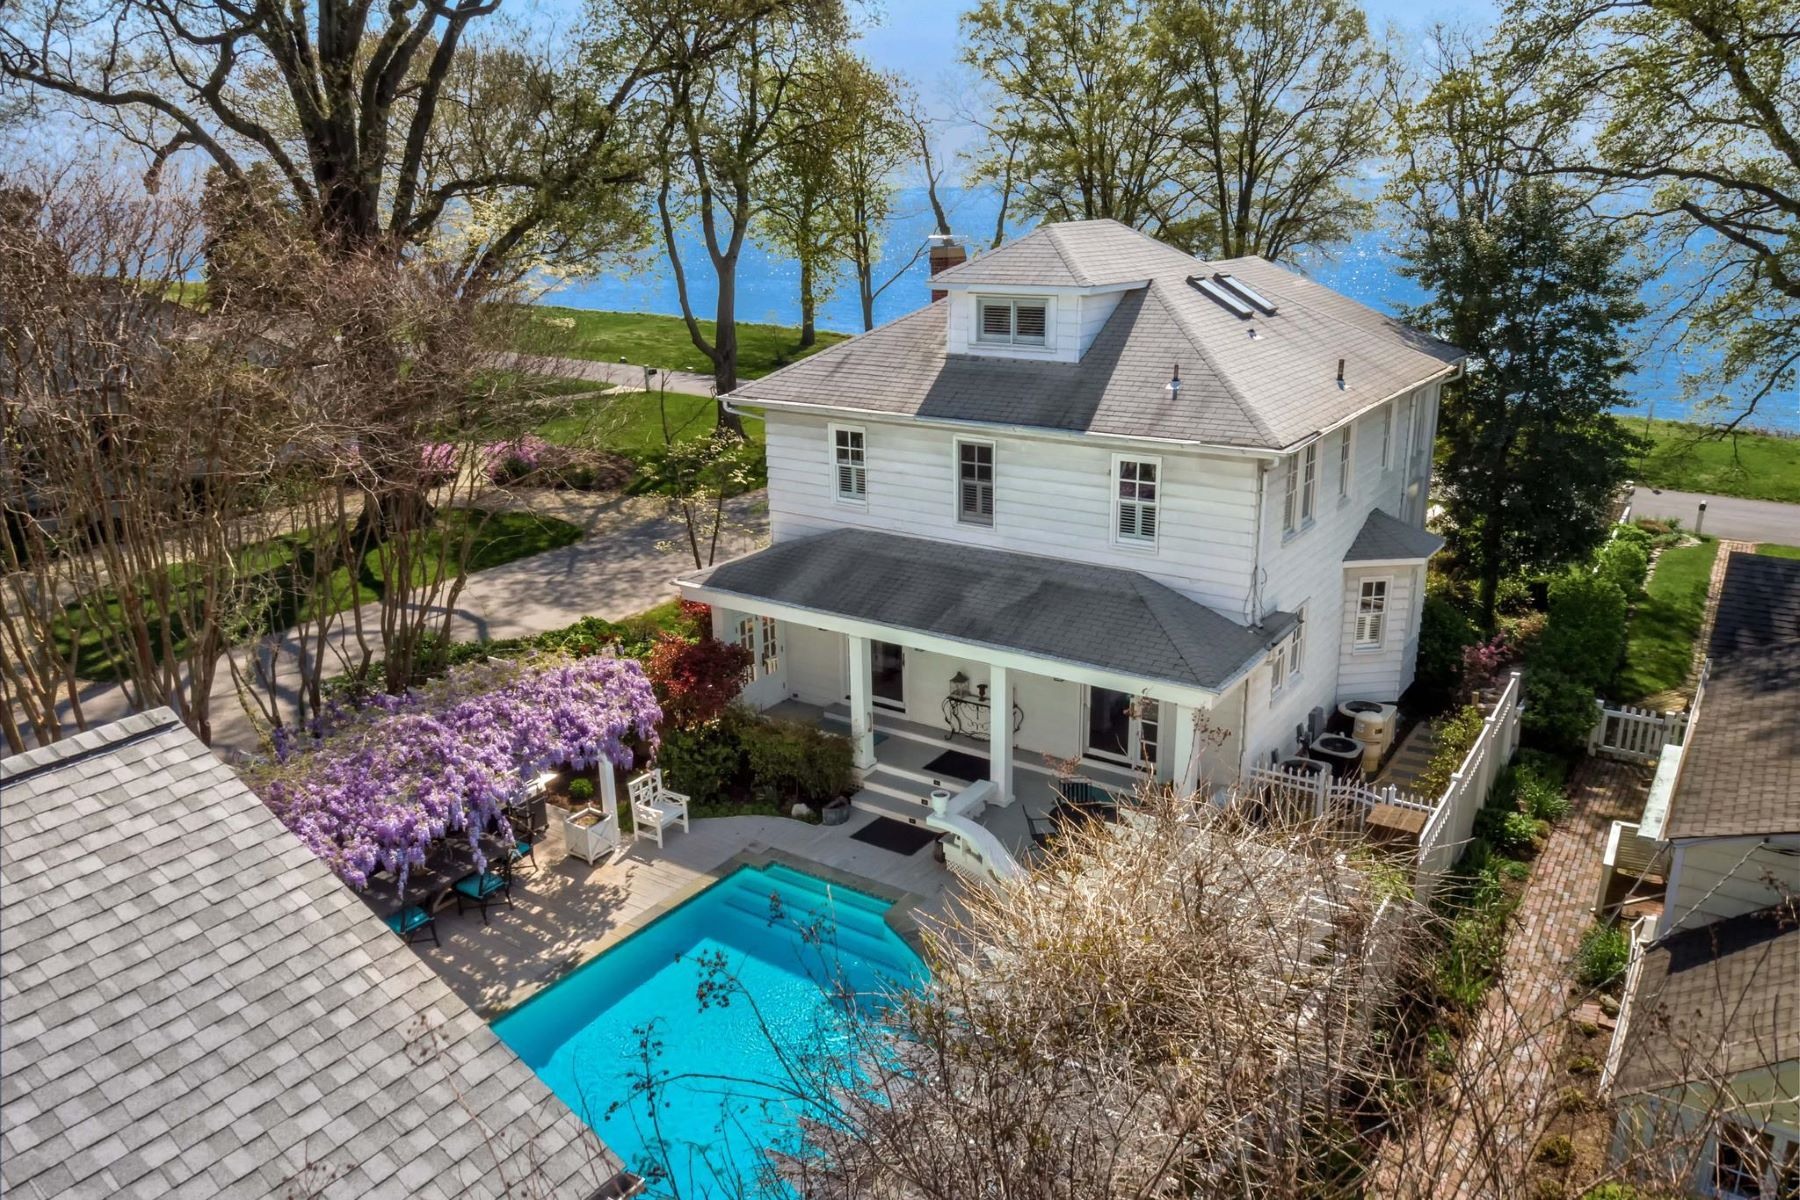 Single Family Homes for Sale at 81 Bay Dr Annapolis, Maryland 21403 United States